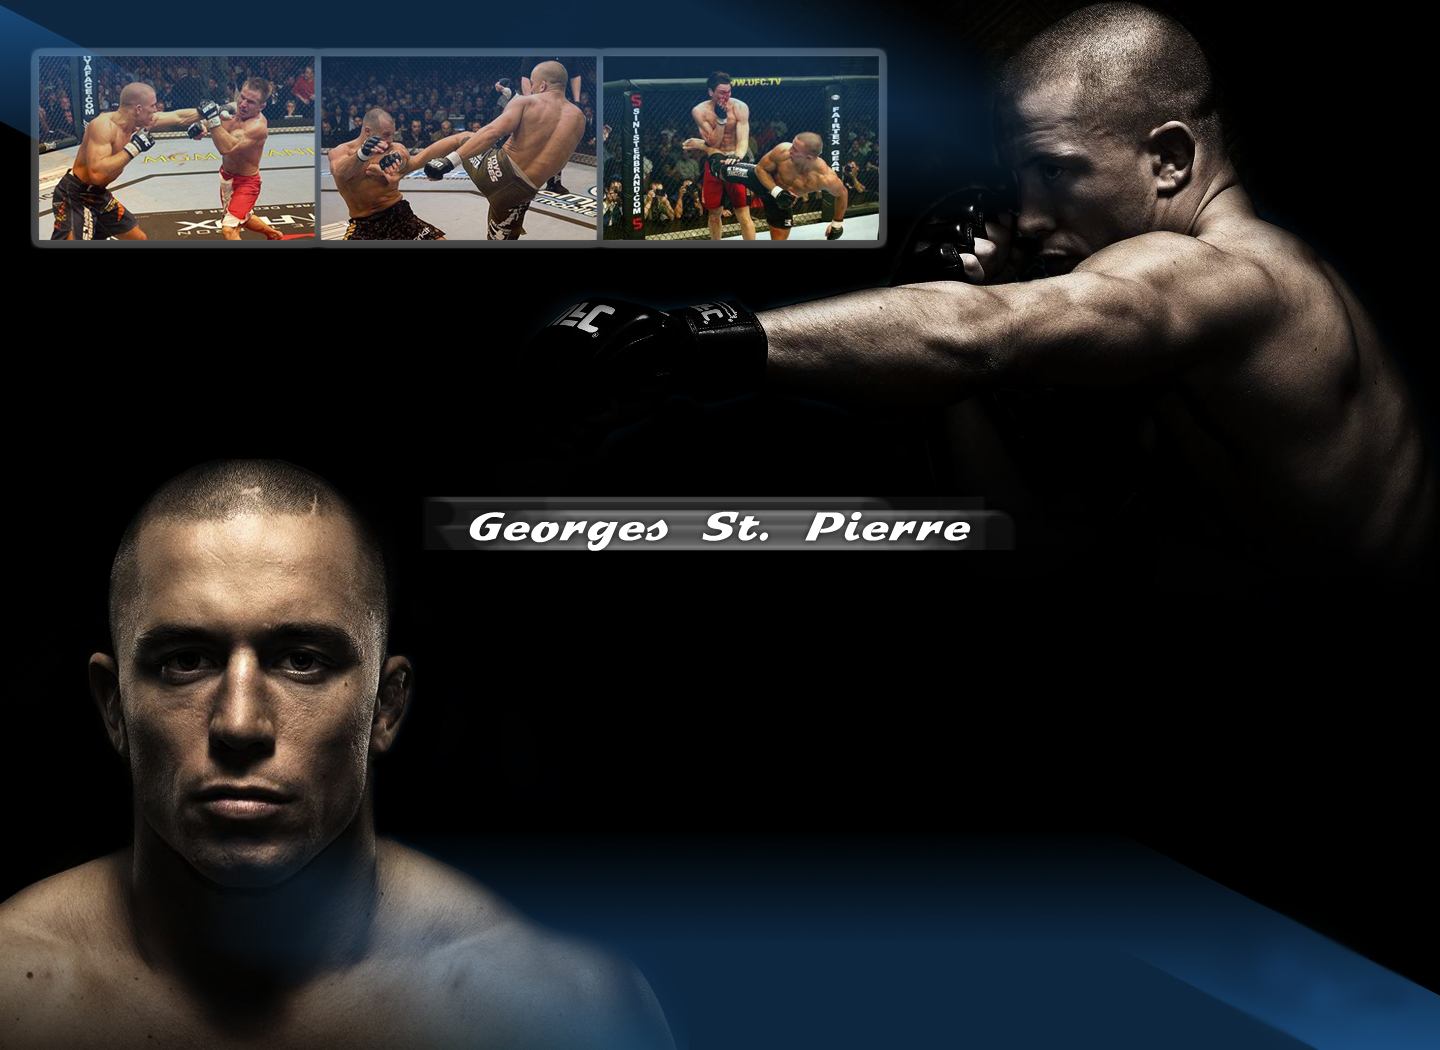 http://2.bp.blogspot.com/-lP6uU_udRkA/TdEauflyHBI/AAAAAAAAABM/Rq5goynfkVE/s1600/george+st+pierre+wall+paper+background+ufc.jpg